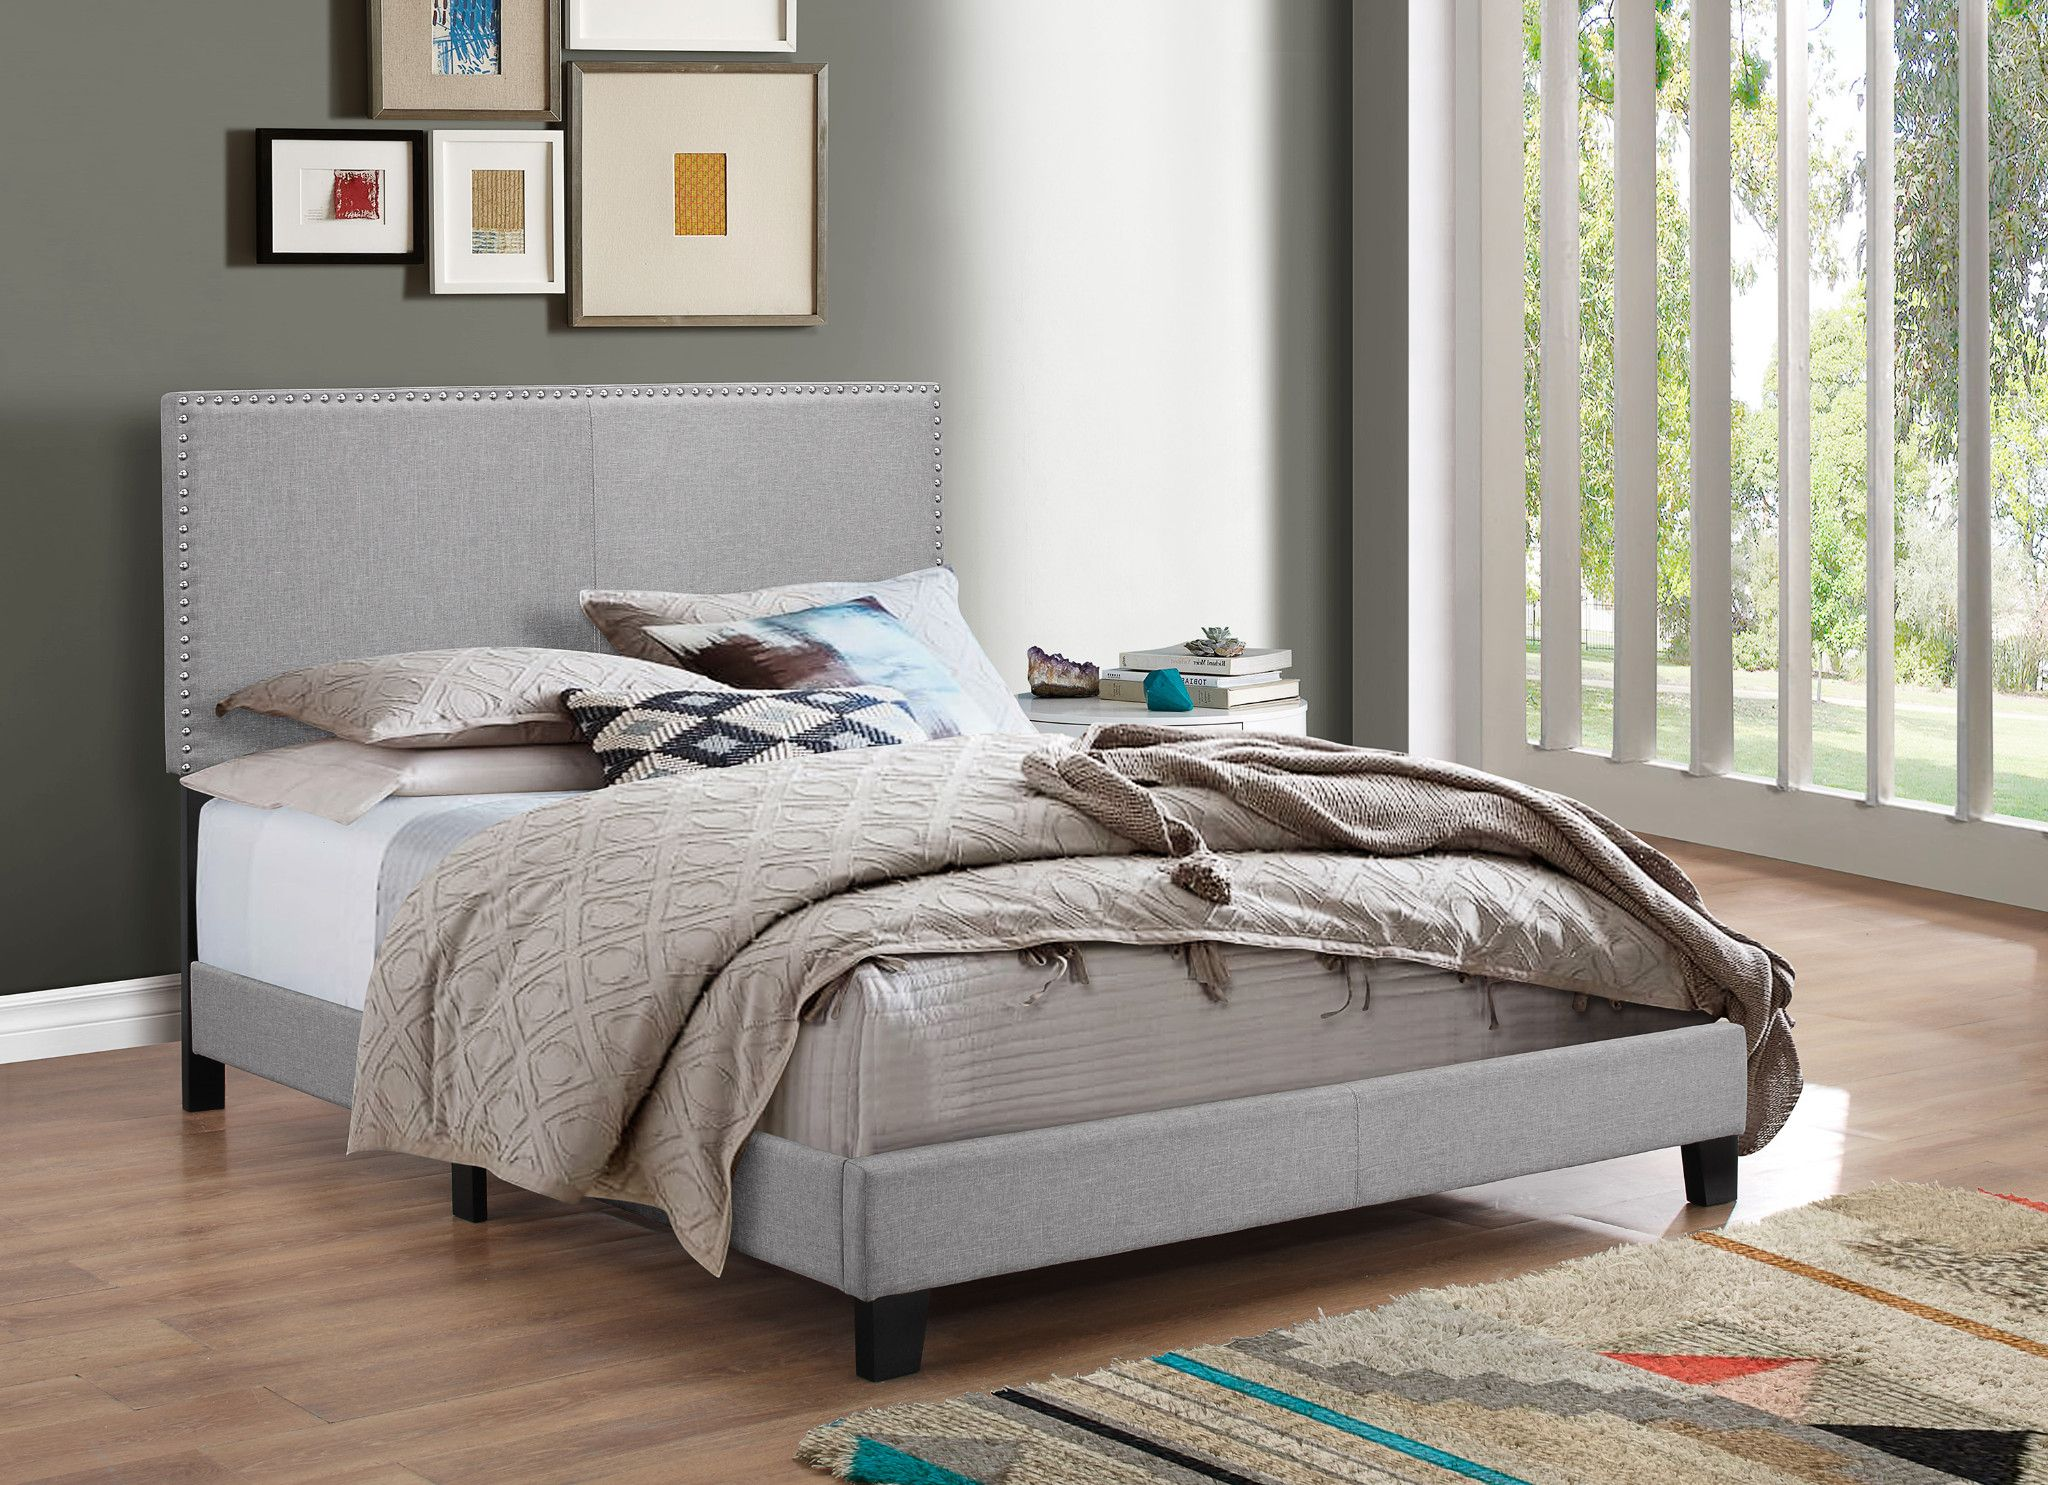 Erin Bed Queen or Full $225.00 Gray with nailhead accents Q - 66